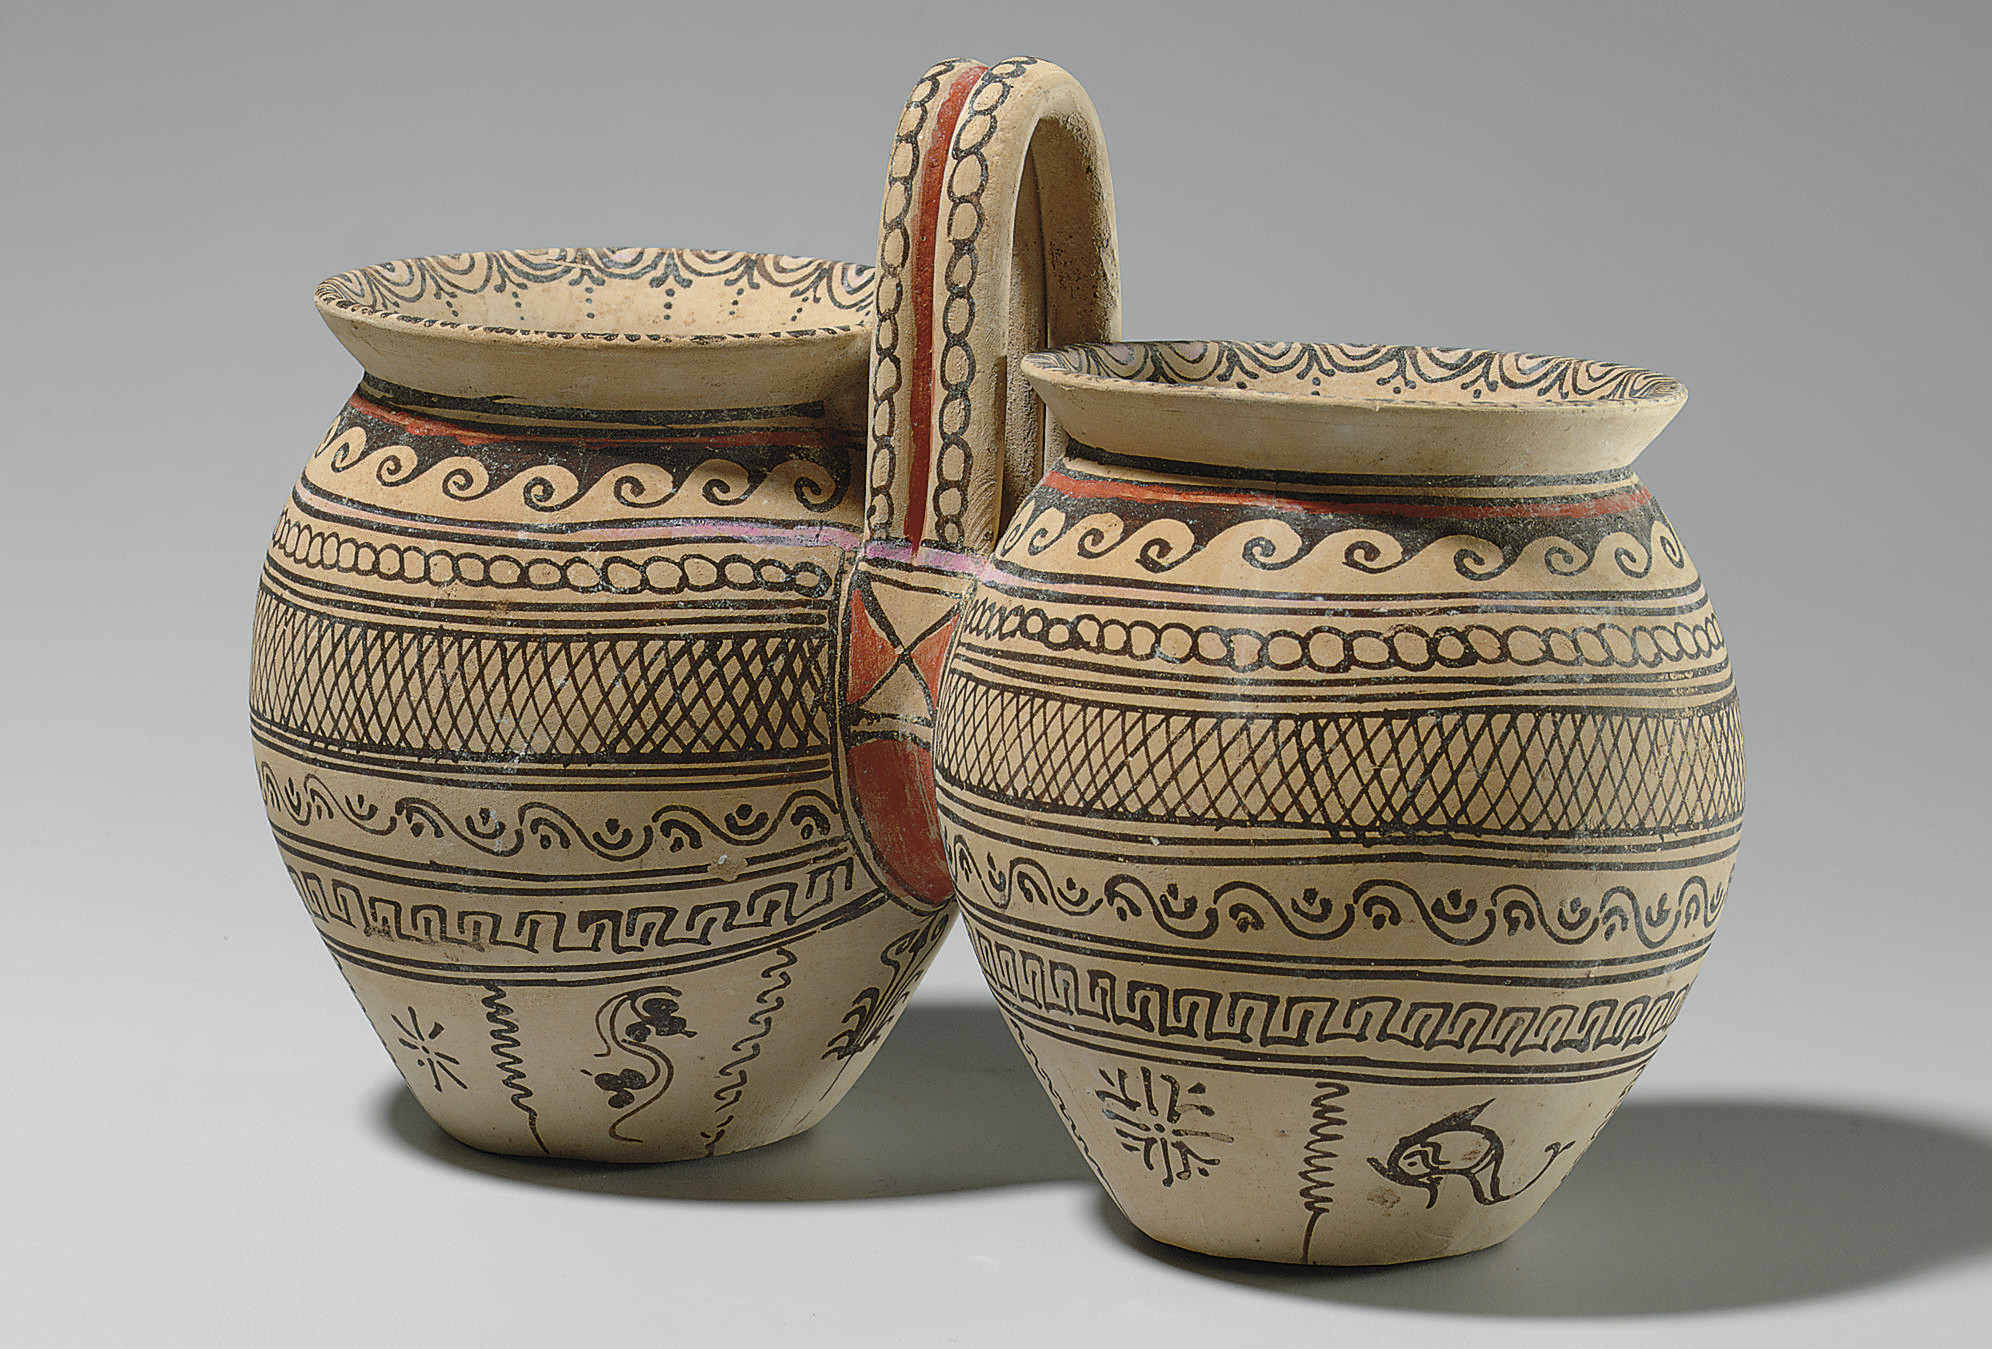 A DAUNIAN POTTERY DOUBLE SITUL